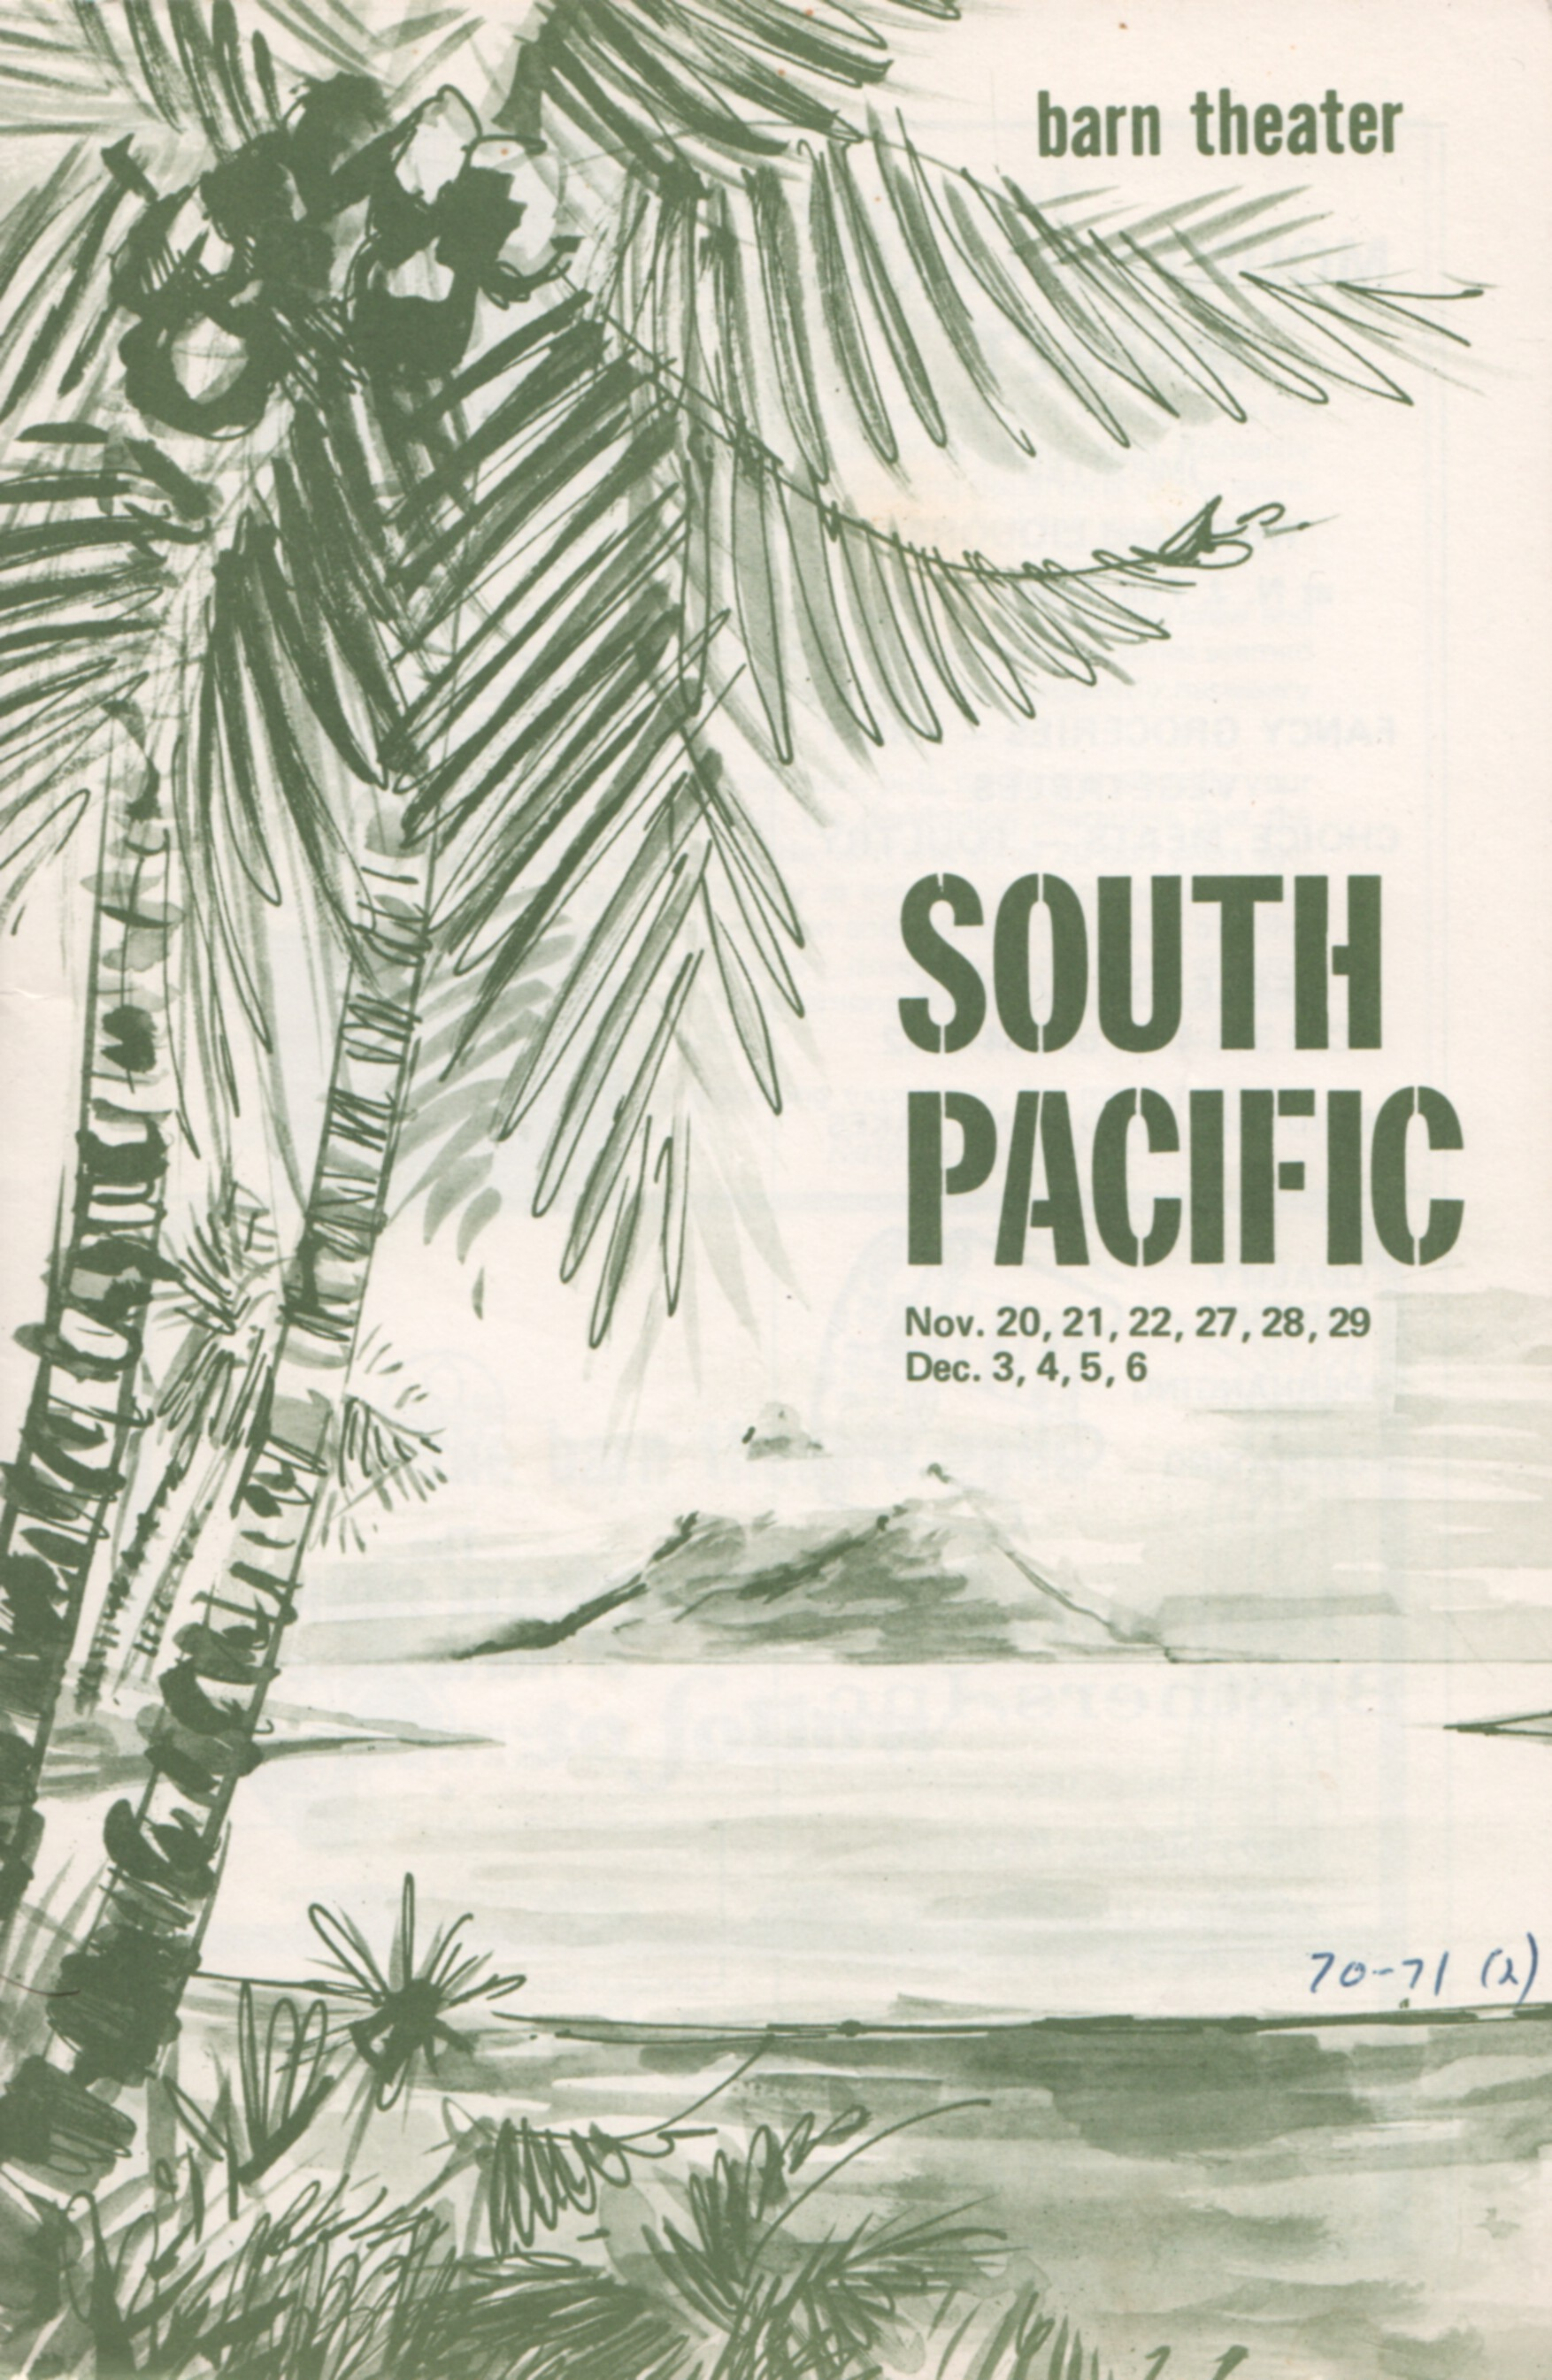 Program Cover for South Pacific